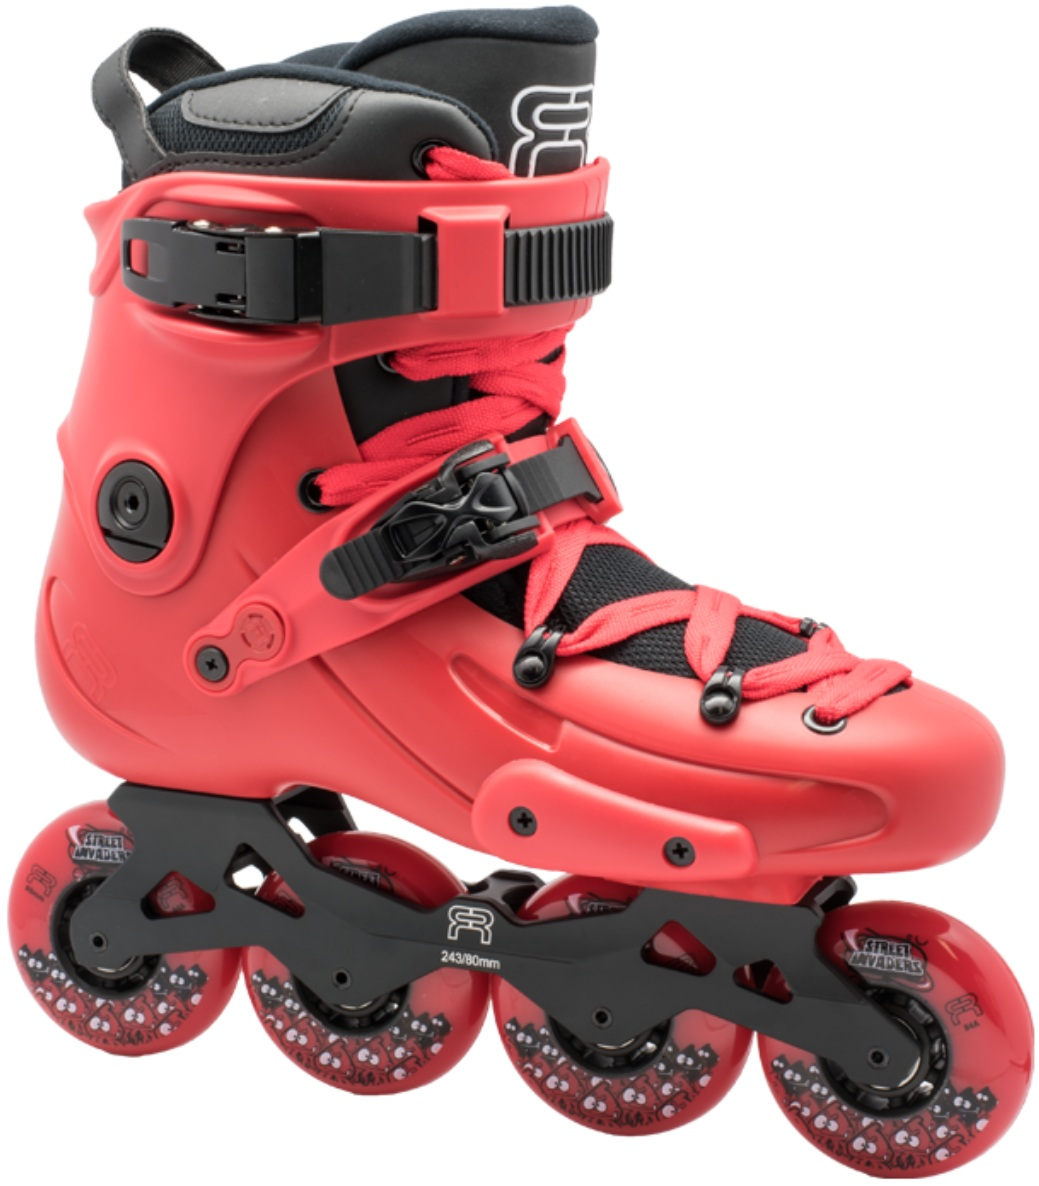 A red inline skate, named FR 1 80, with 4 wheels of 80 mm